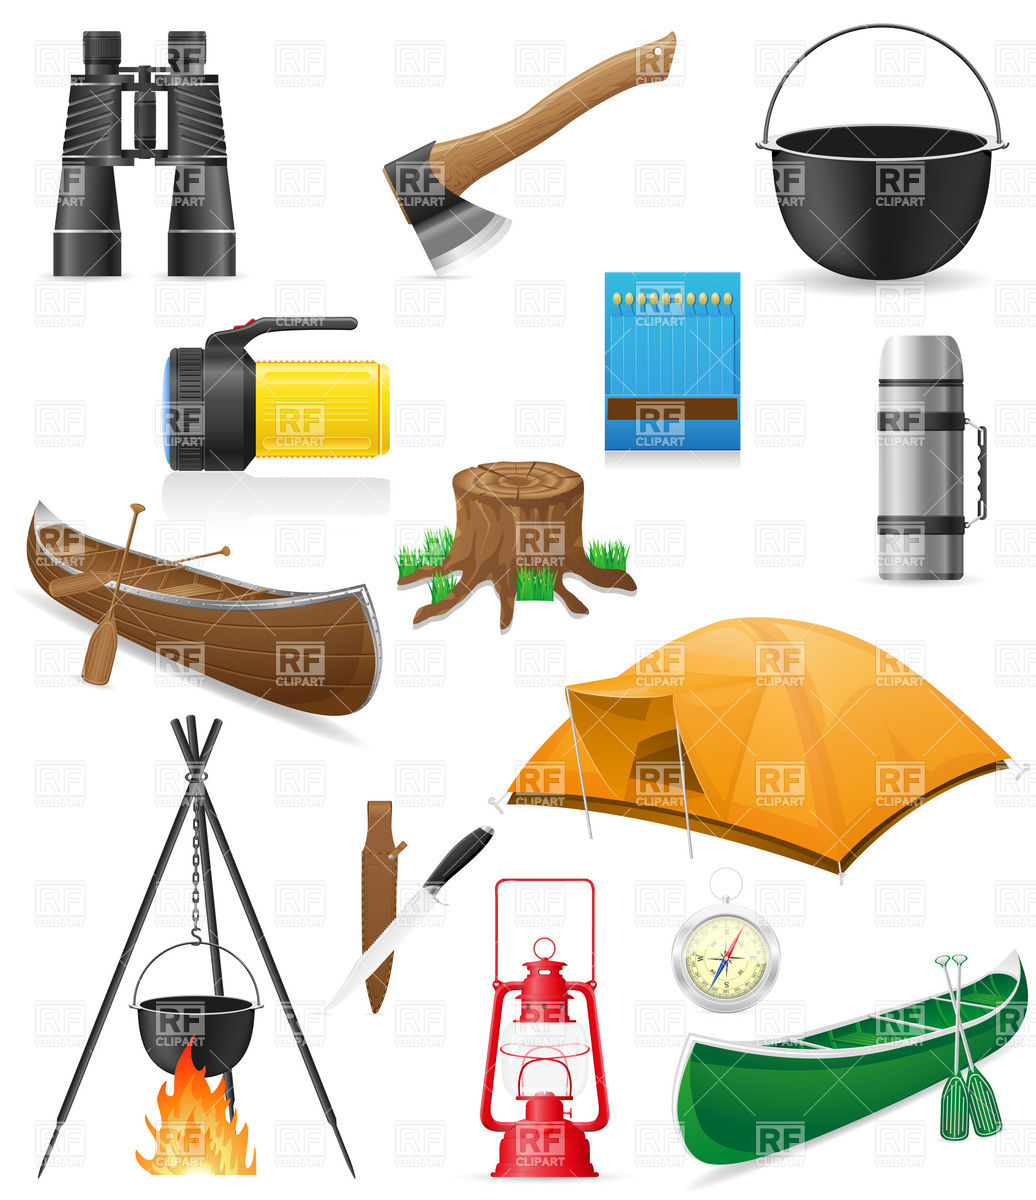 Camping equipment and outdoor hiking objects Vector Image #19752.